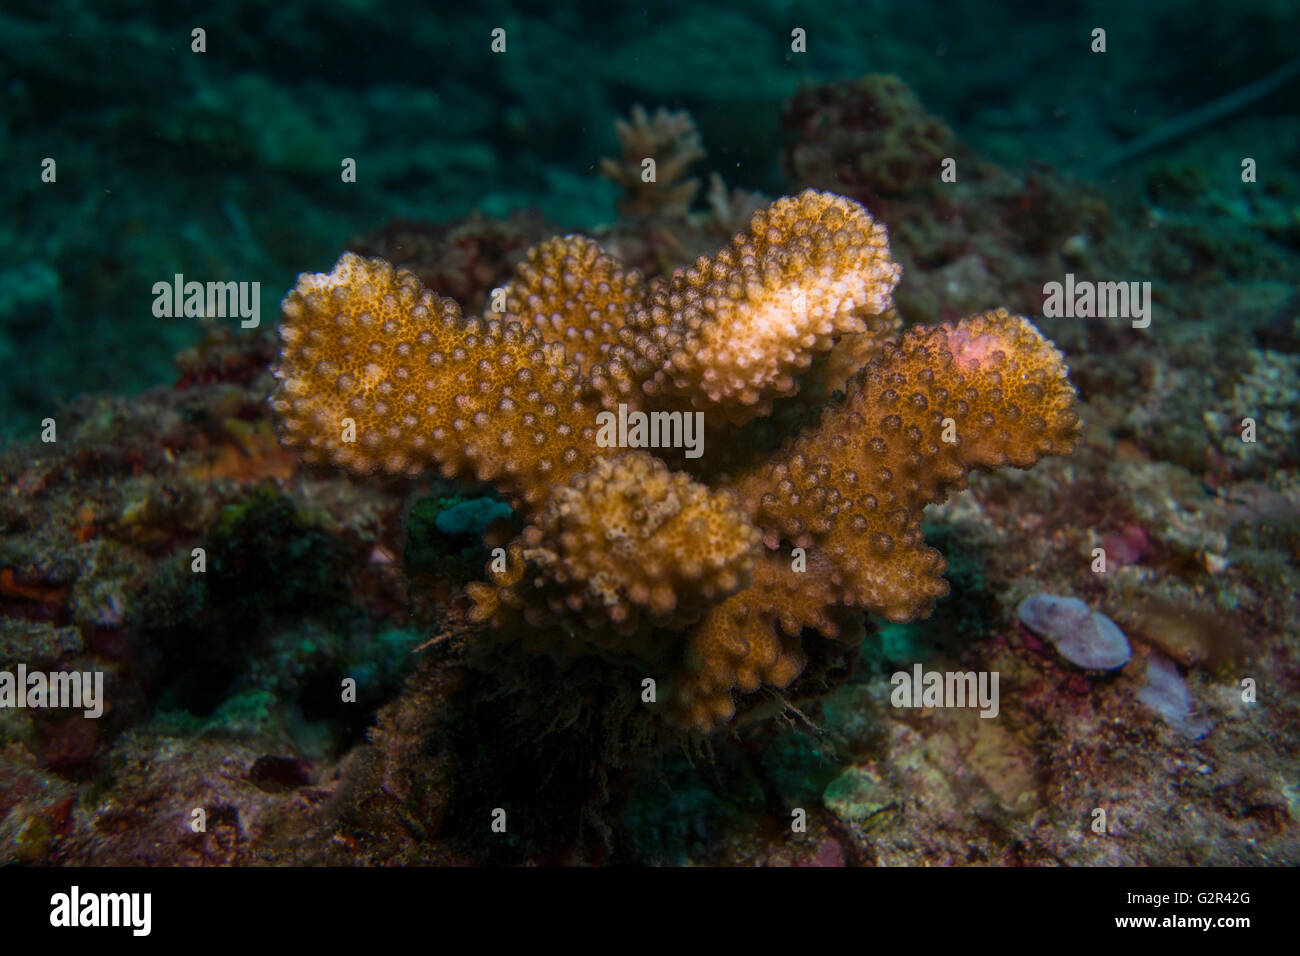 Stony coral form the coral triangle, Brunei Darussalam. Stock Photo